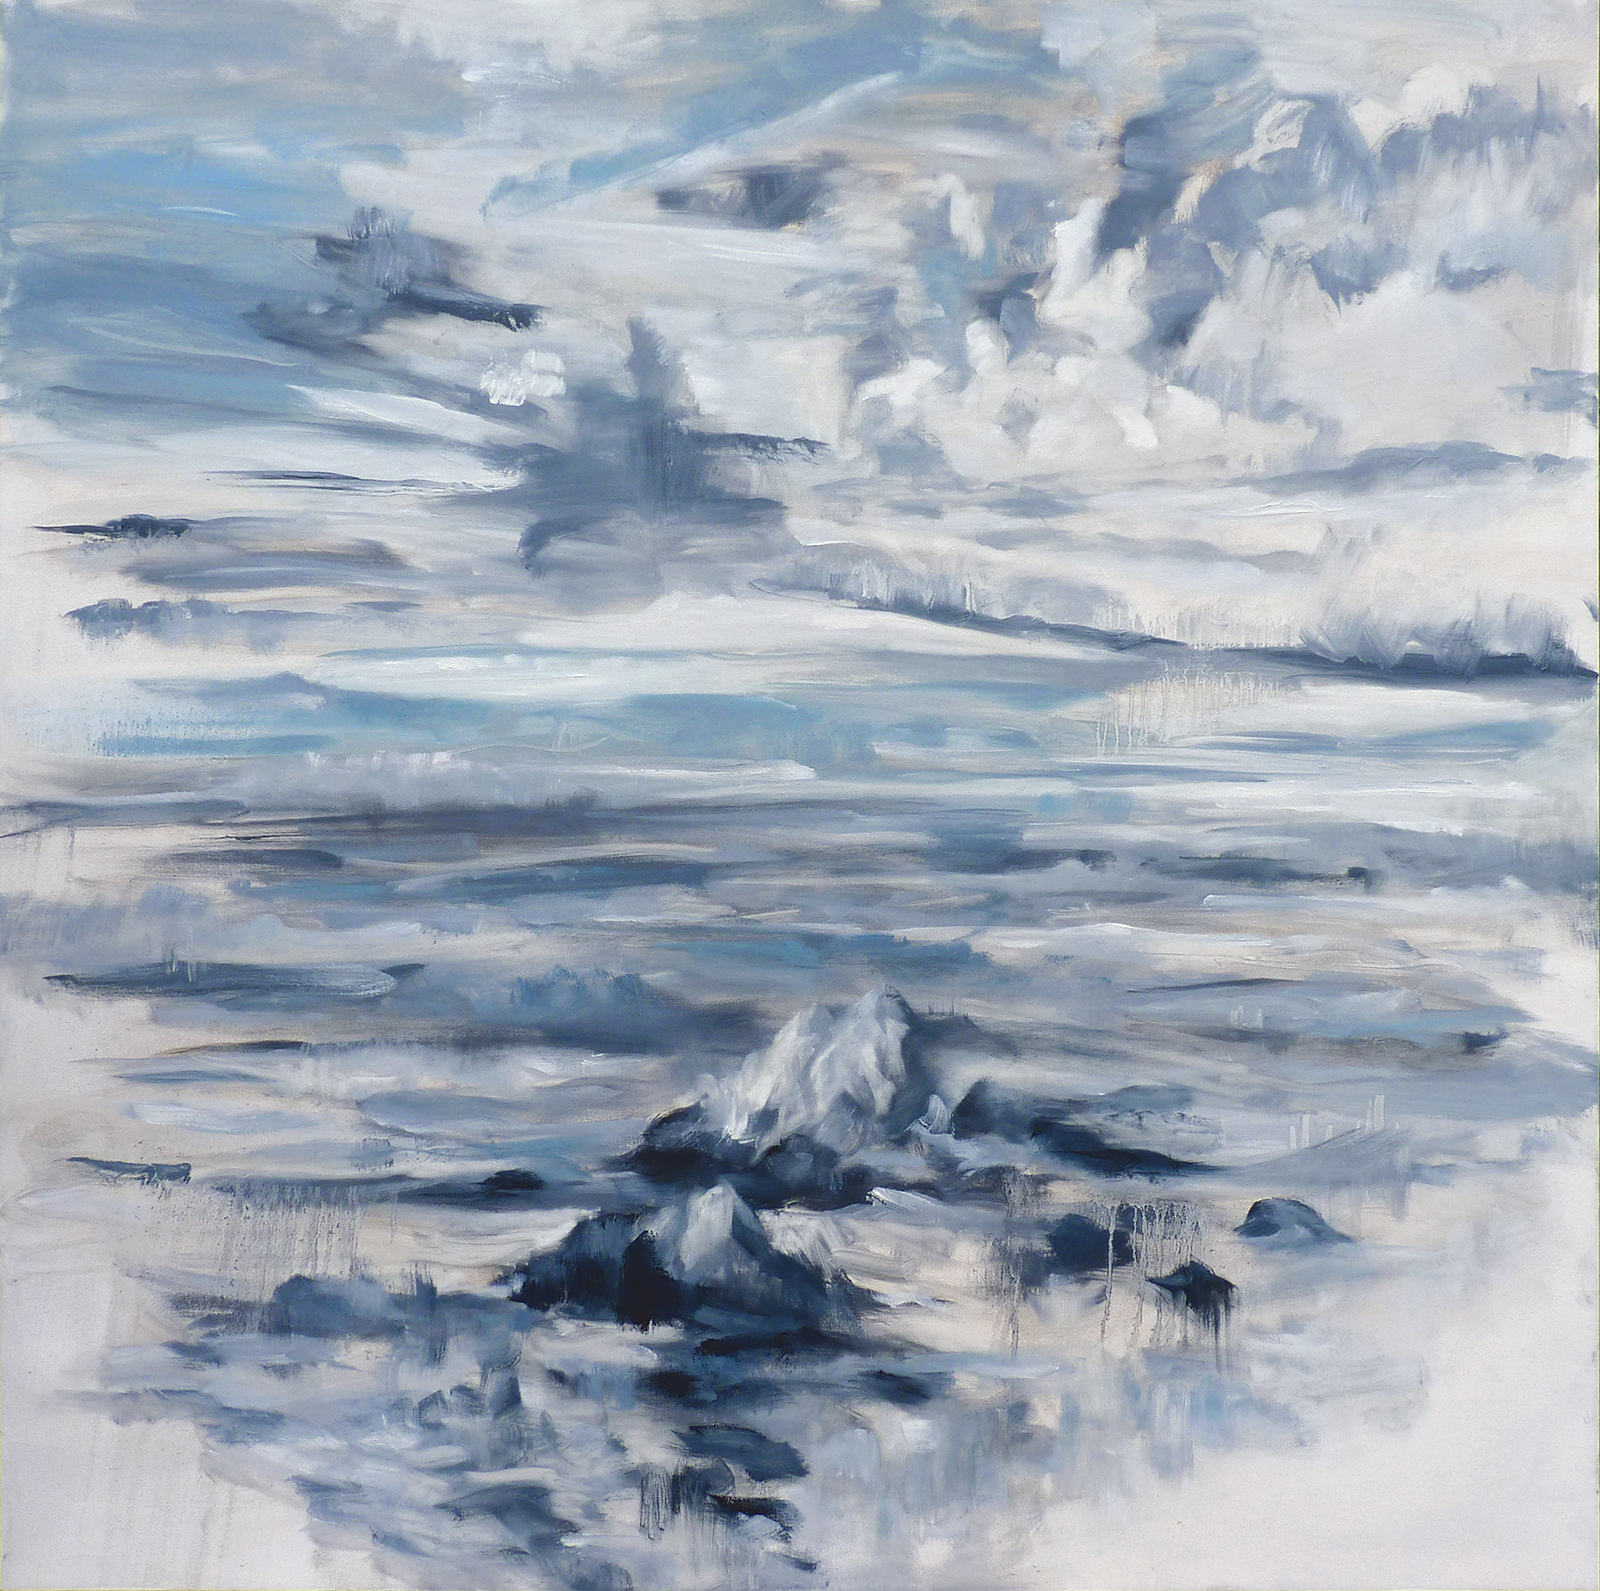 Dappled Sky , 2019. Oil on canvas. 48x48 inches (121.9 x 121.9 cm)